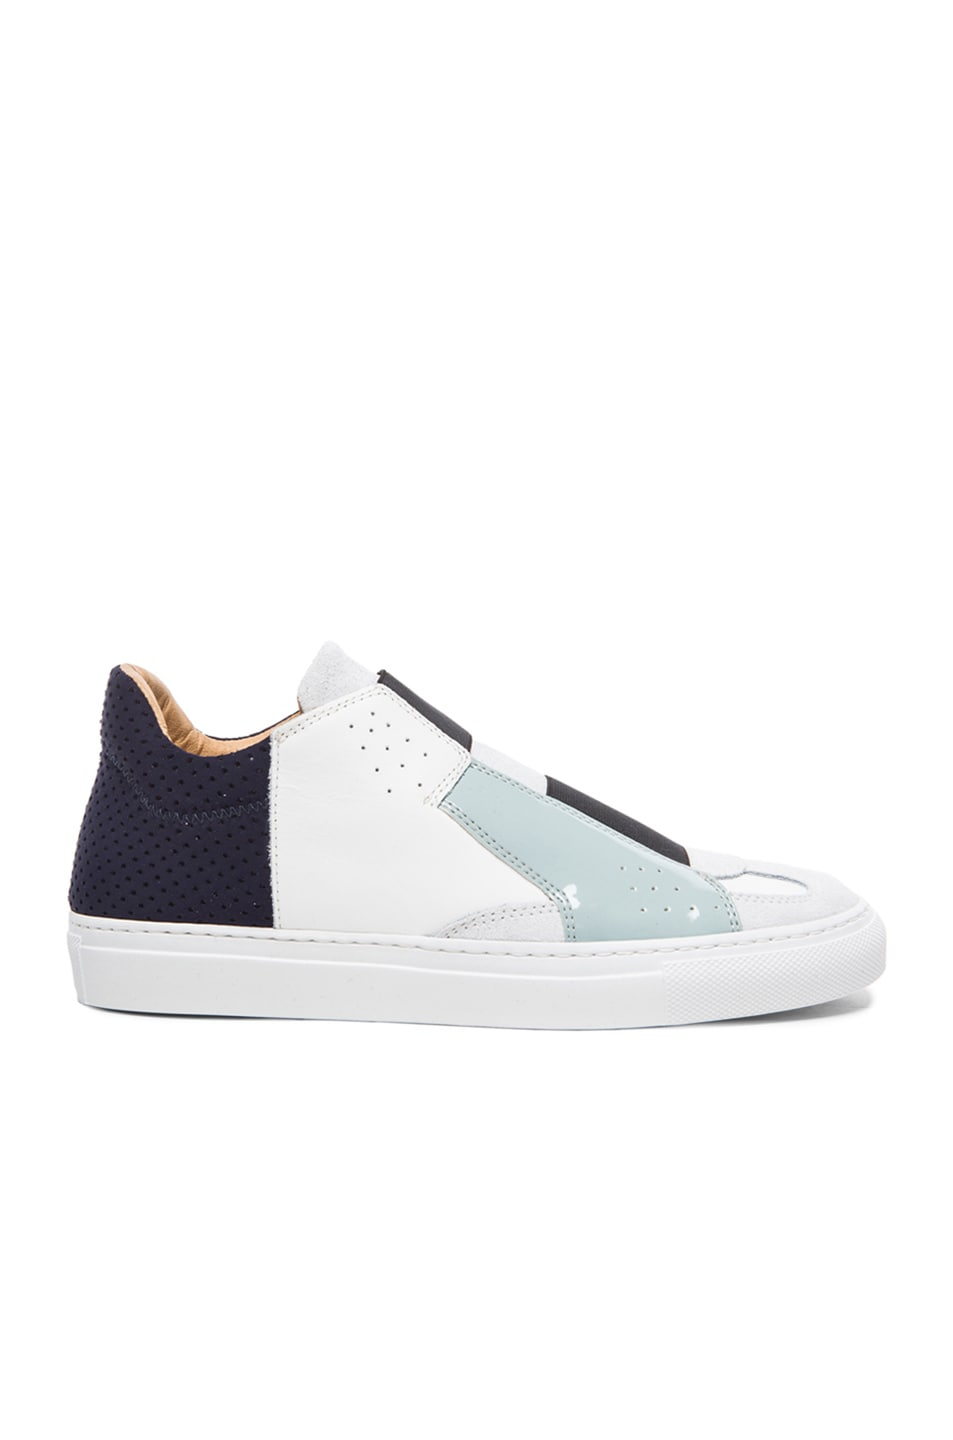 Image 1 of MM6 Maison Margiela Low Top Leather Sneakers in White Multi